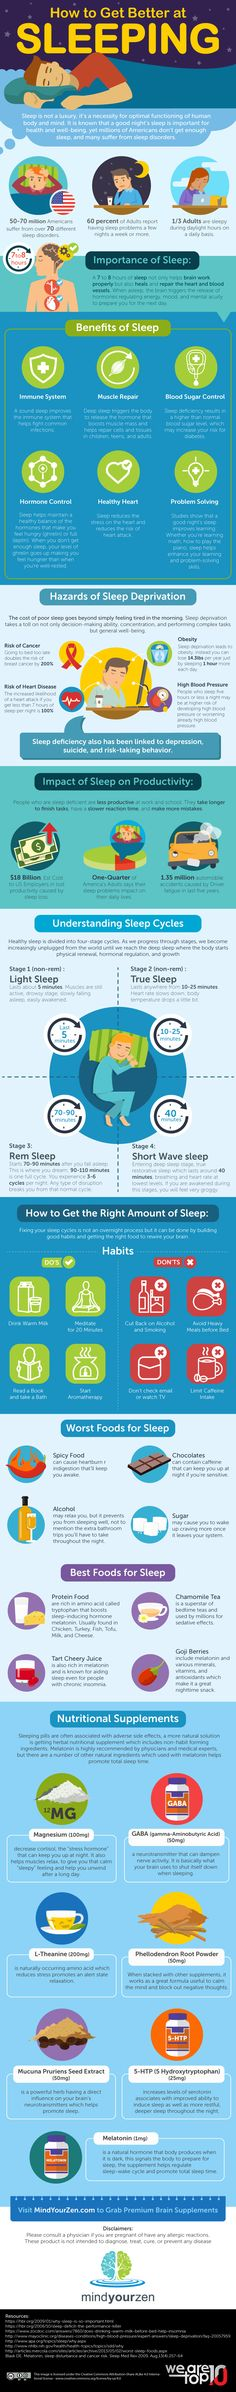 How to Sleep Better and Faster Every Single Night